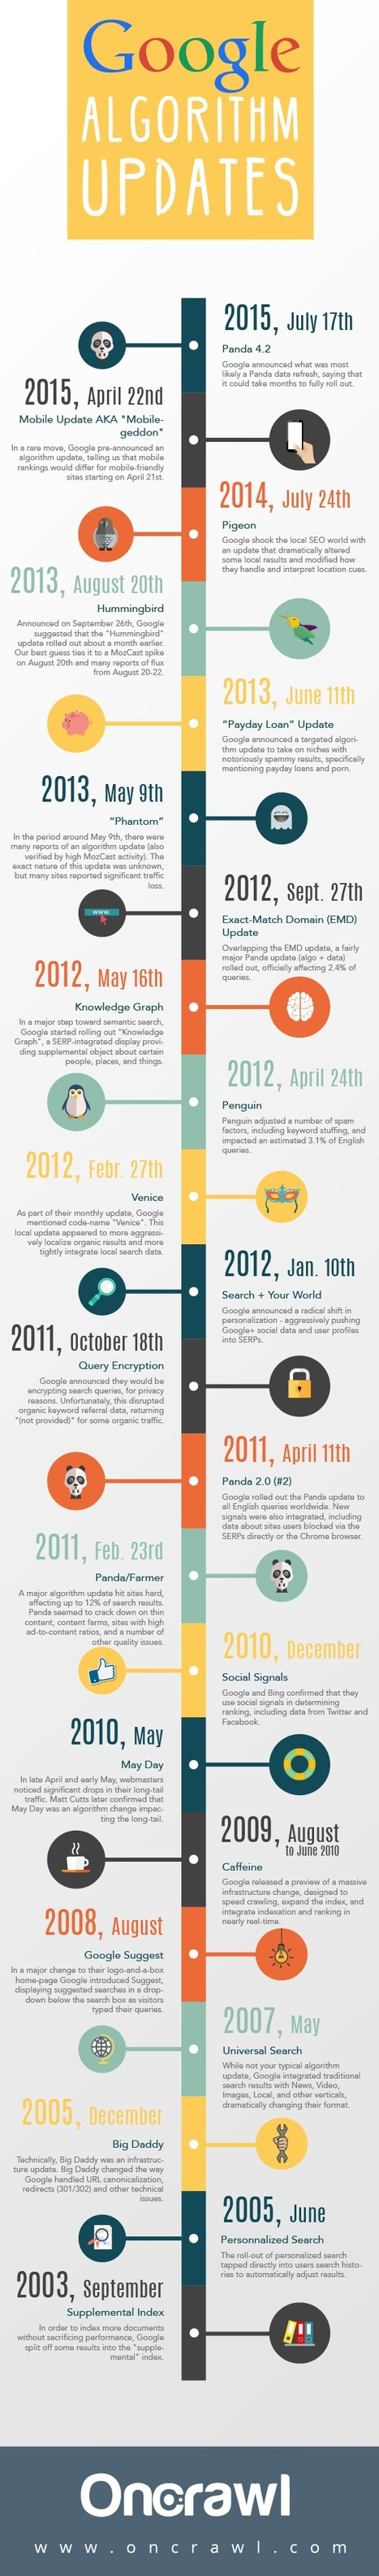 Google Algorithm Updates - 2003 to 2015 [Infographic] | Marketing & Webmarketing | Scoop.it